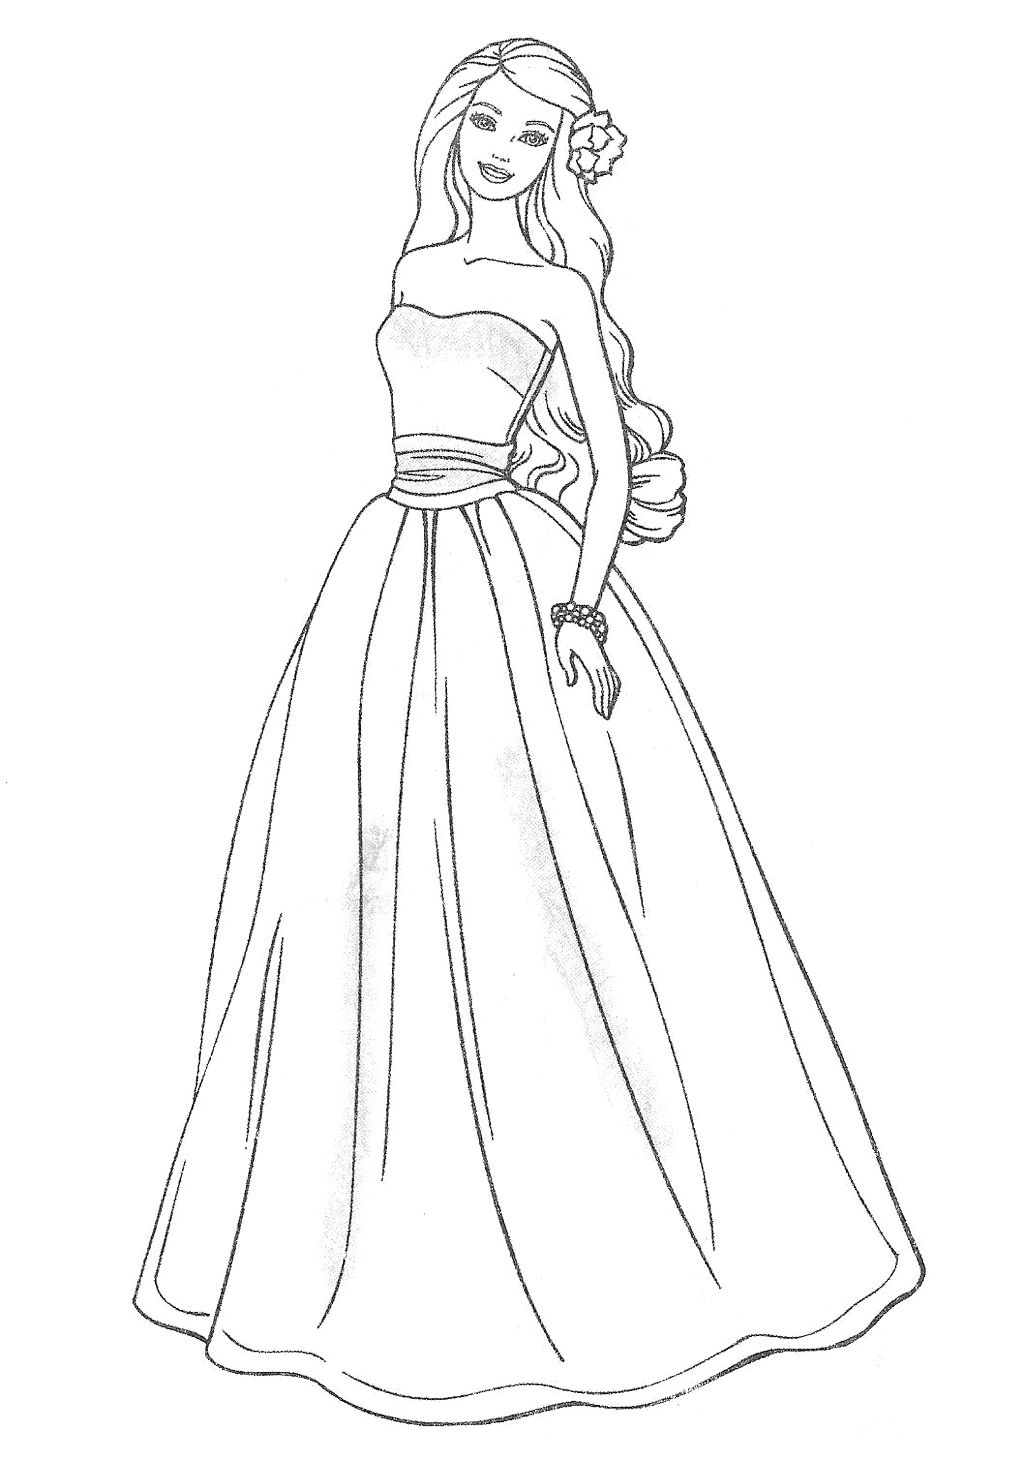 Girl in Dress Coloring Page | Ruha-mintatervezés rajzra | Pinterest ...